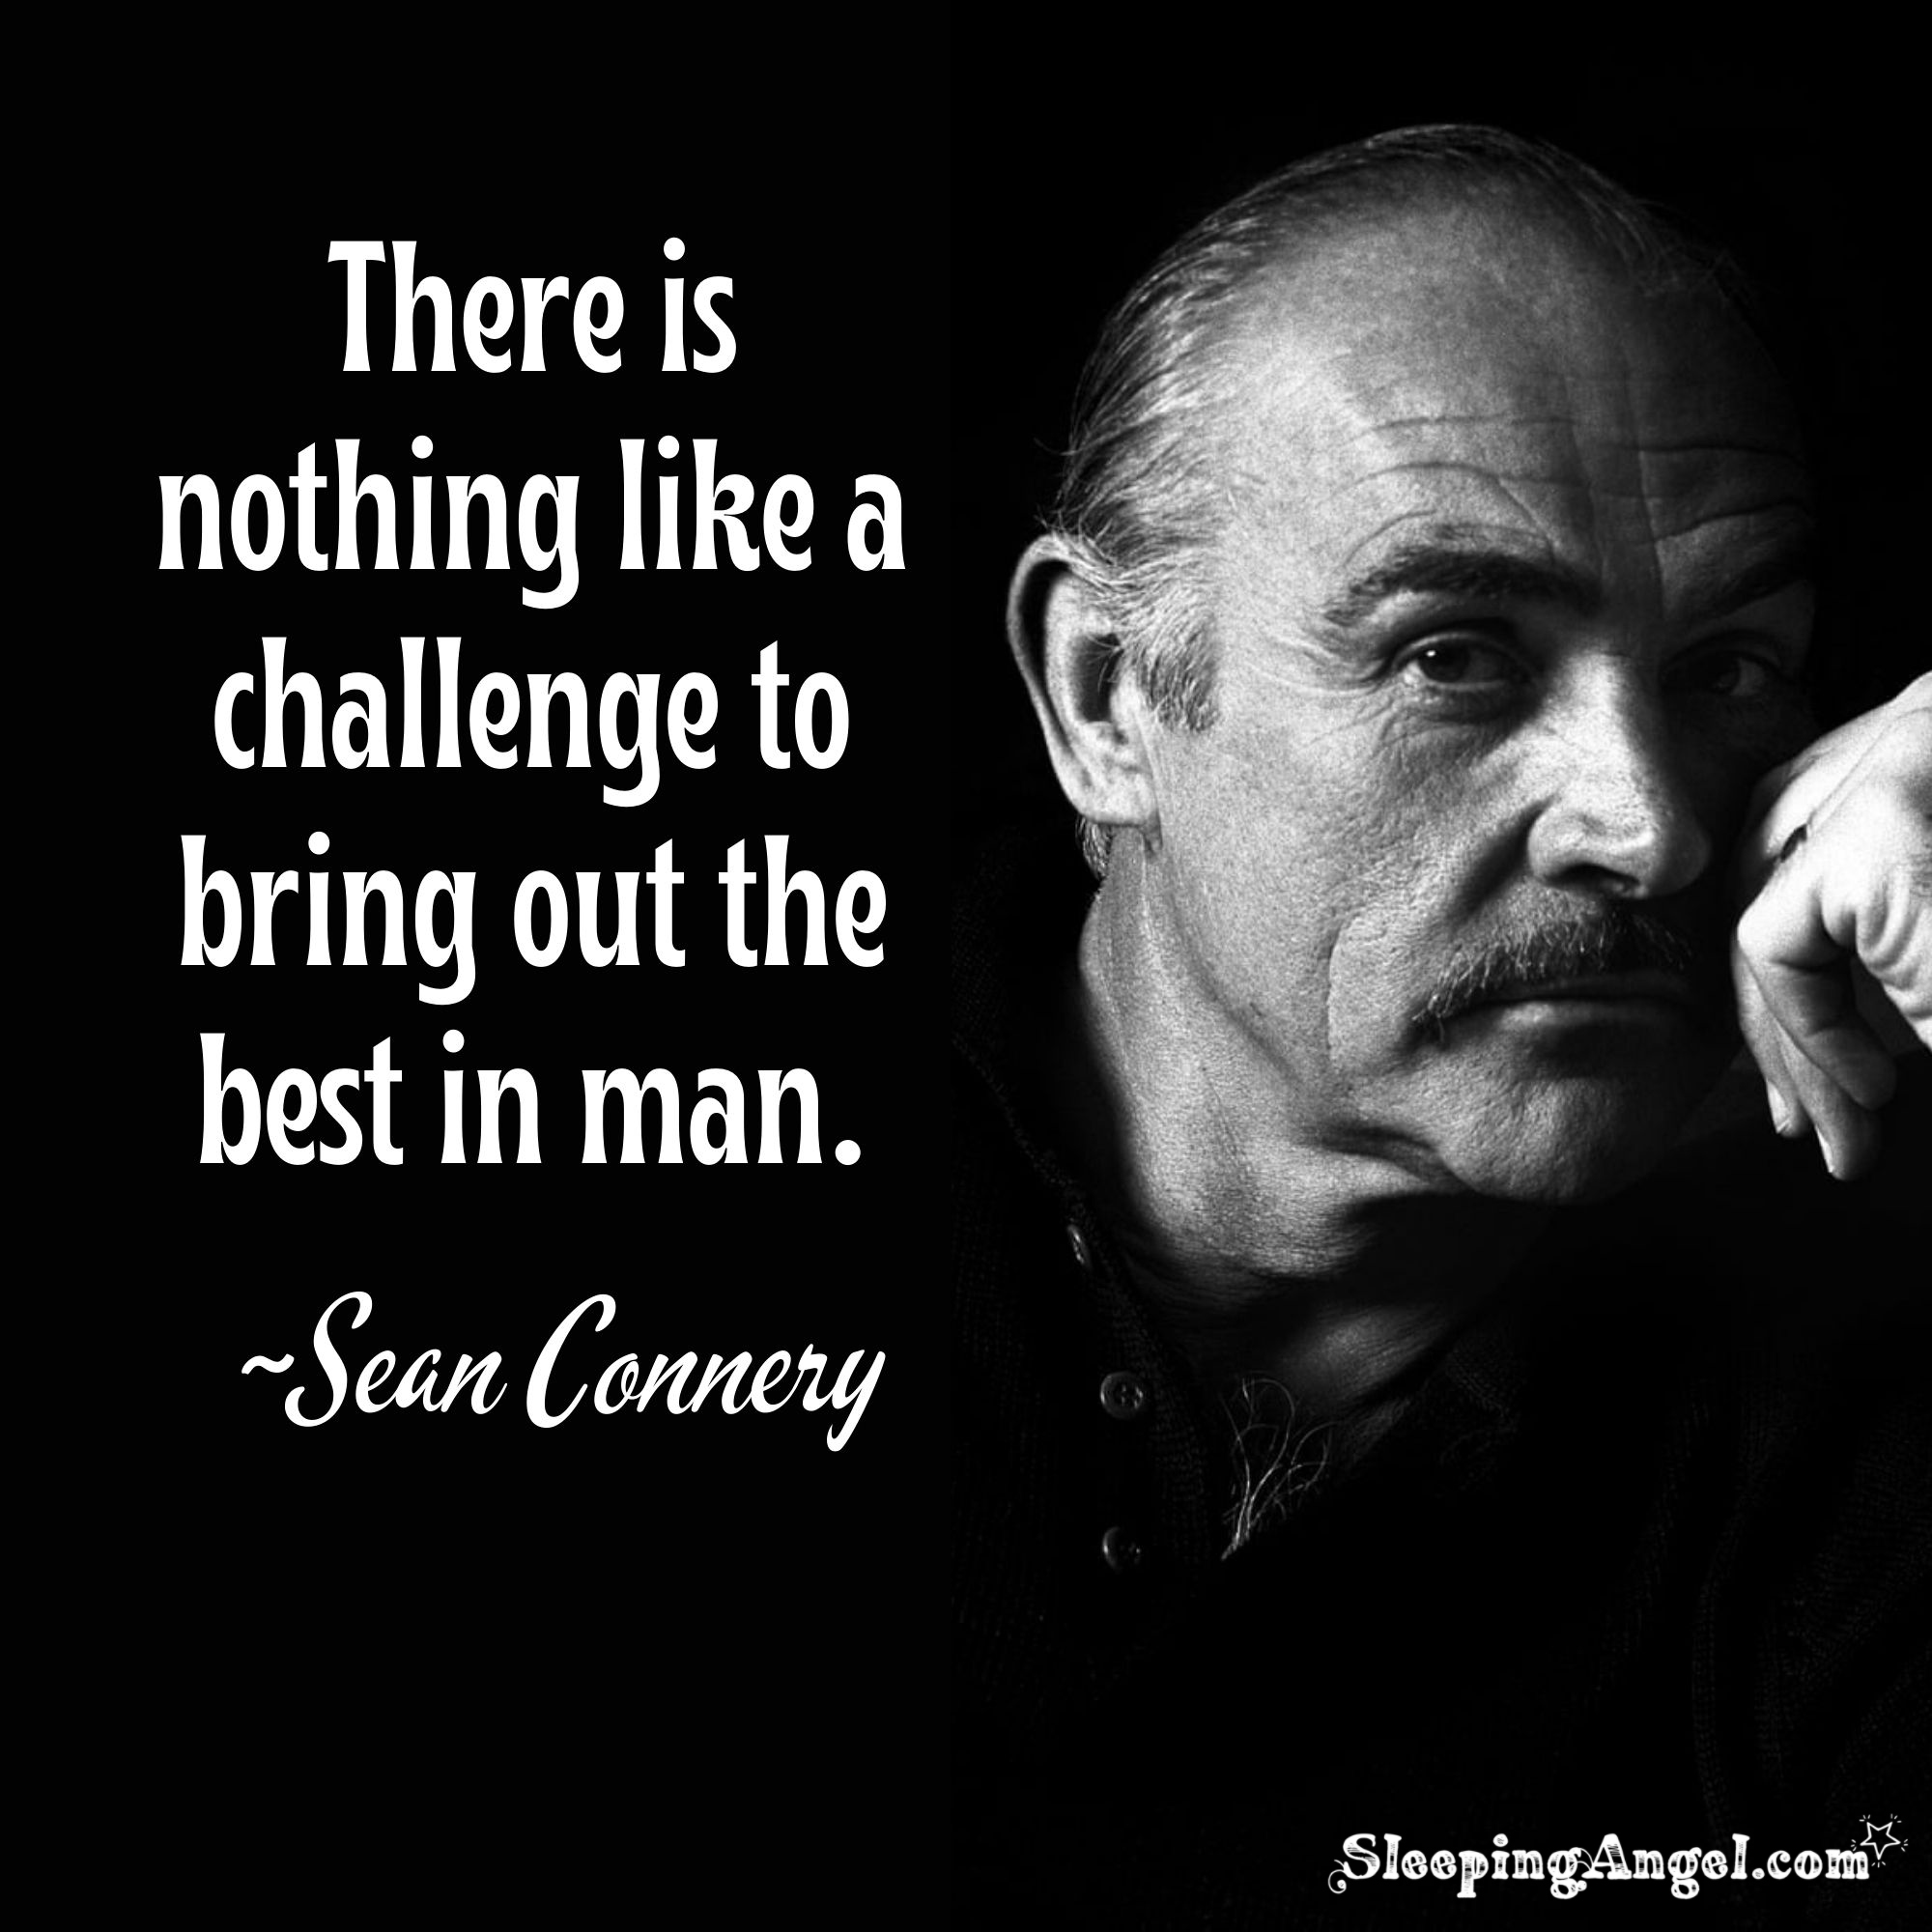 Sean Connery Quote